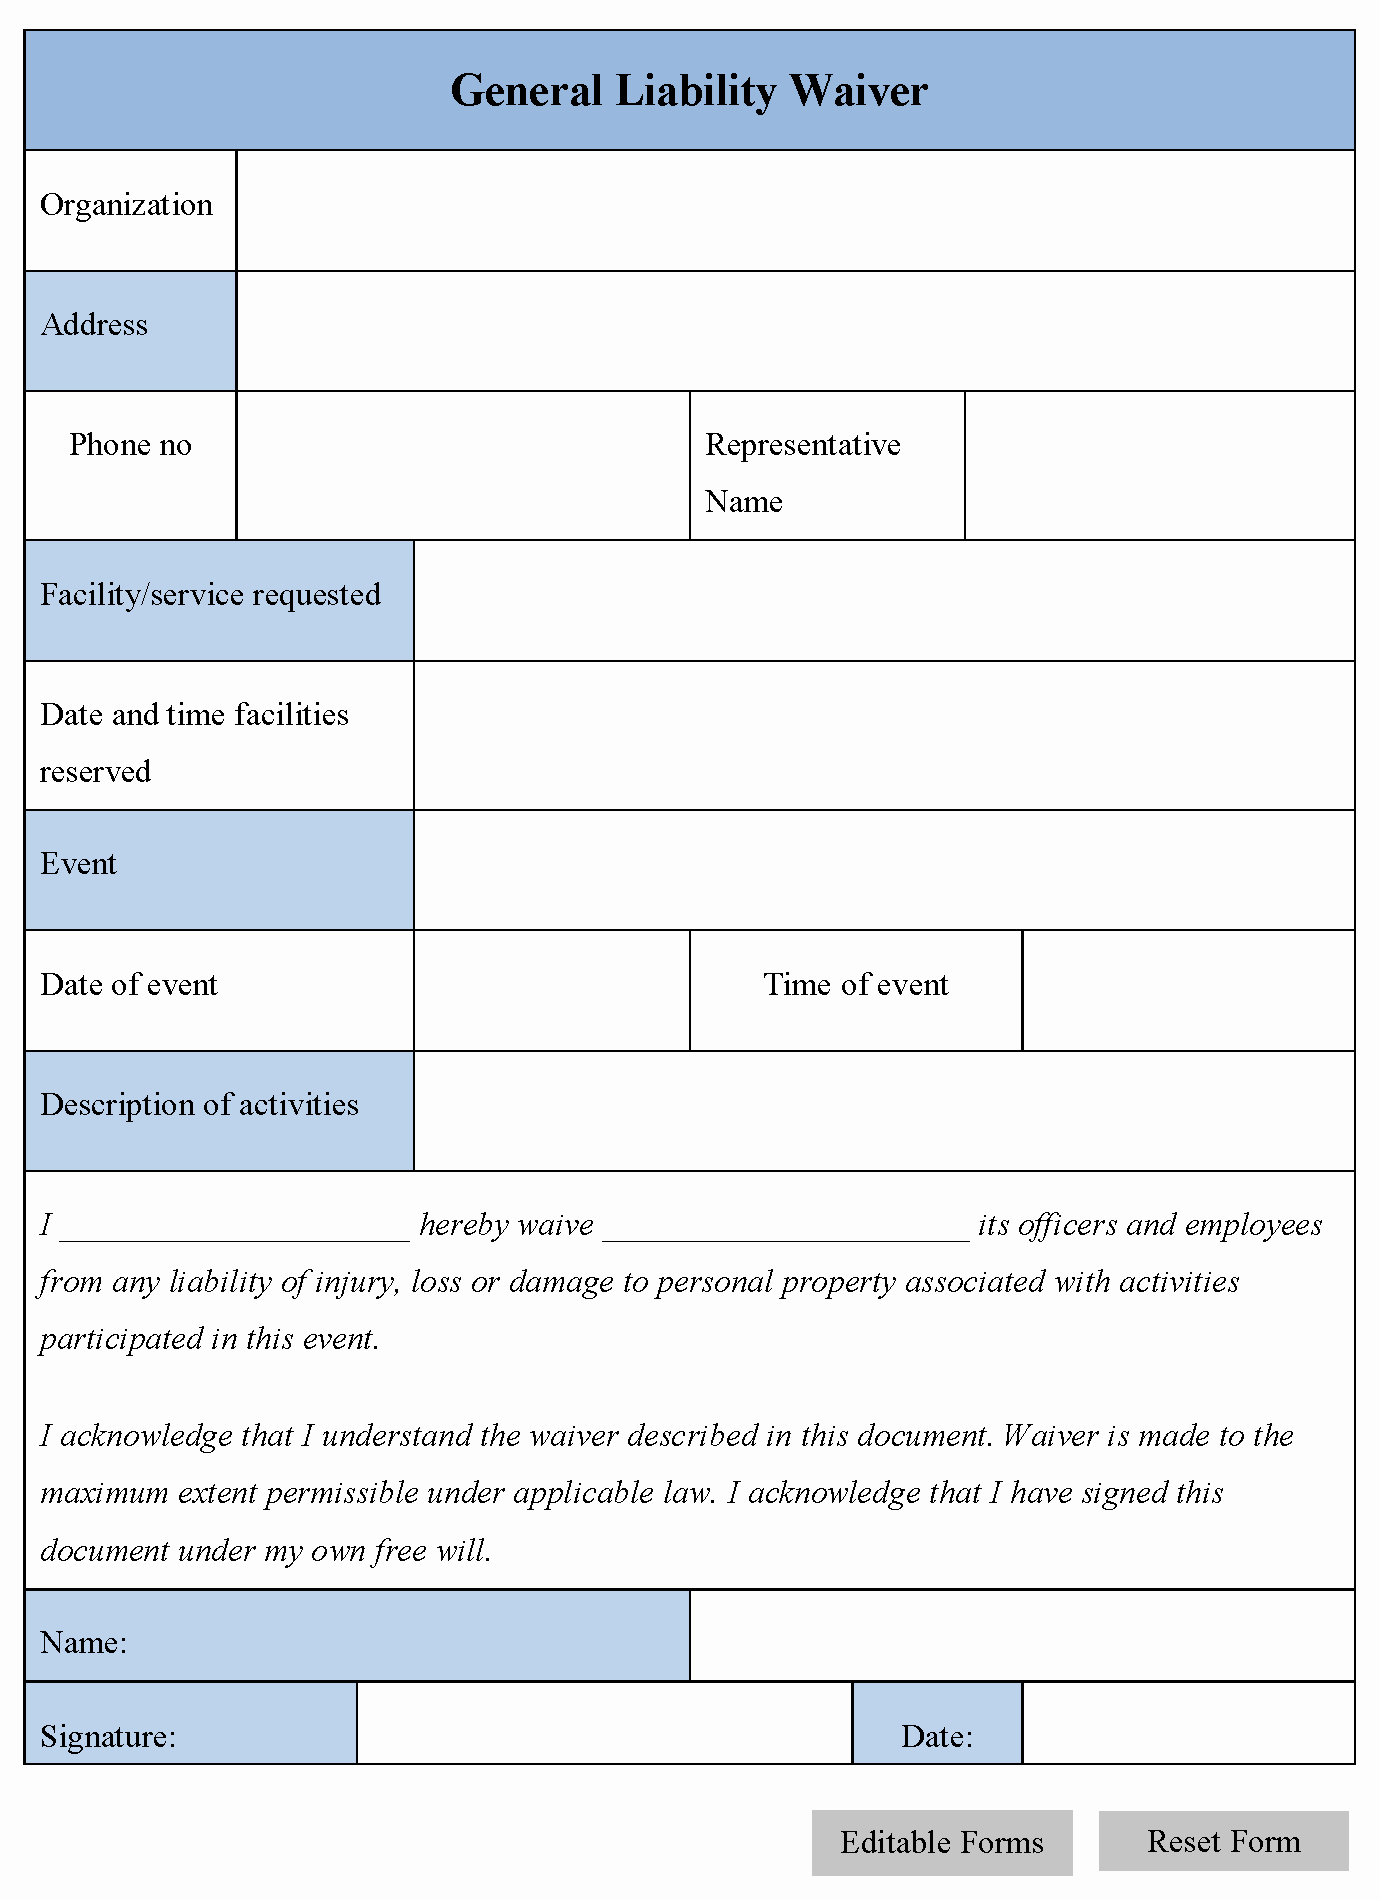 General Liability Release form Inspirational General Liability Waiver form